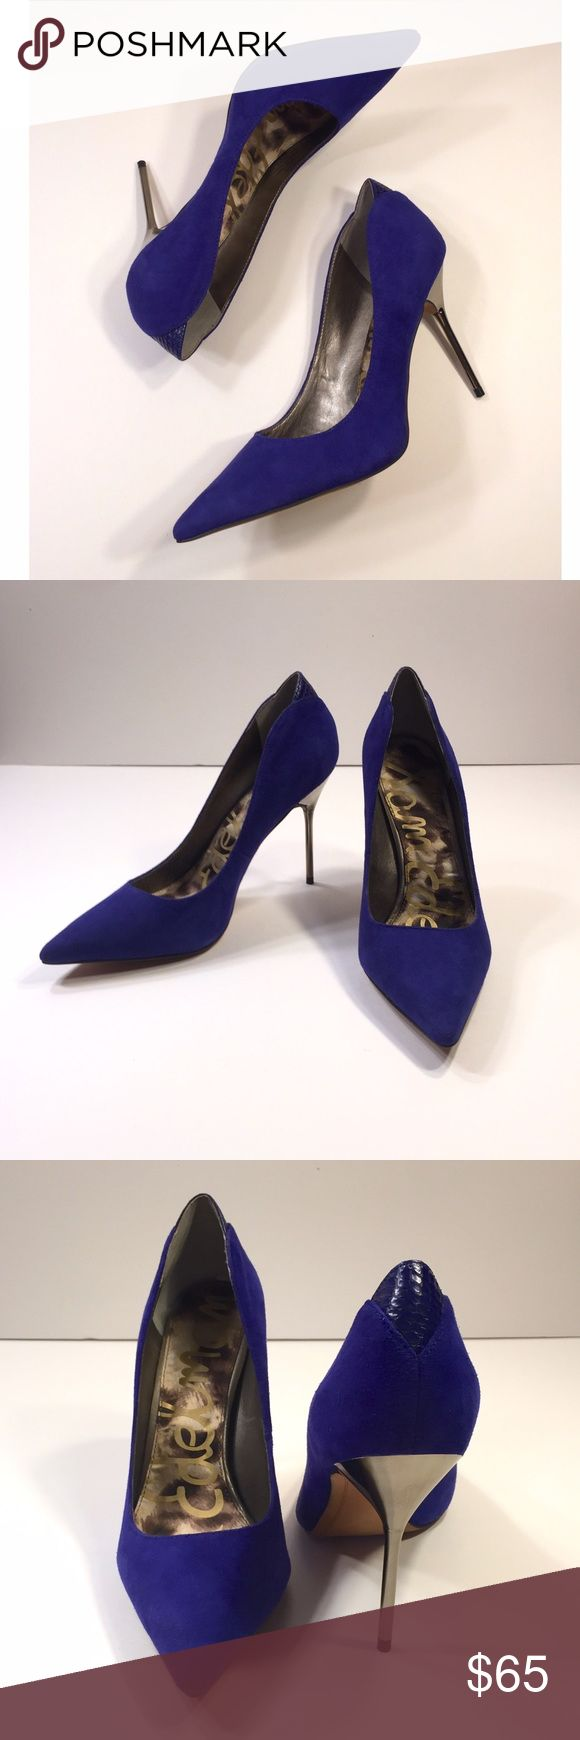 """Sam Edelman Danielle Cobalt Metallic Heels Bright and beautiful cobalt suede pump featuring snakeskin embossed leather detail at back and metallic stiletto heel. New in box, never worn. Heel height: 4"""". Leather upper, balance manmade. Sam Edelman Shoes Heels"""